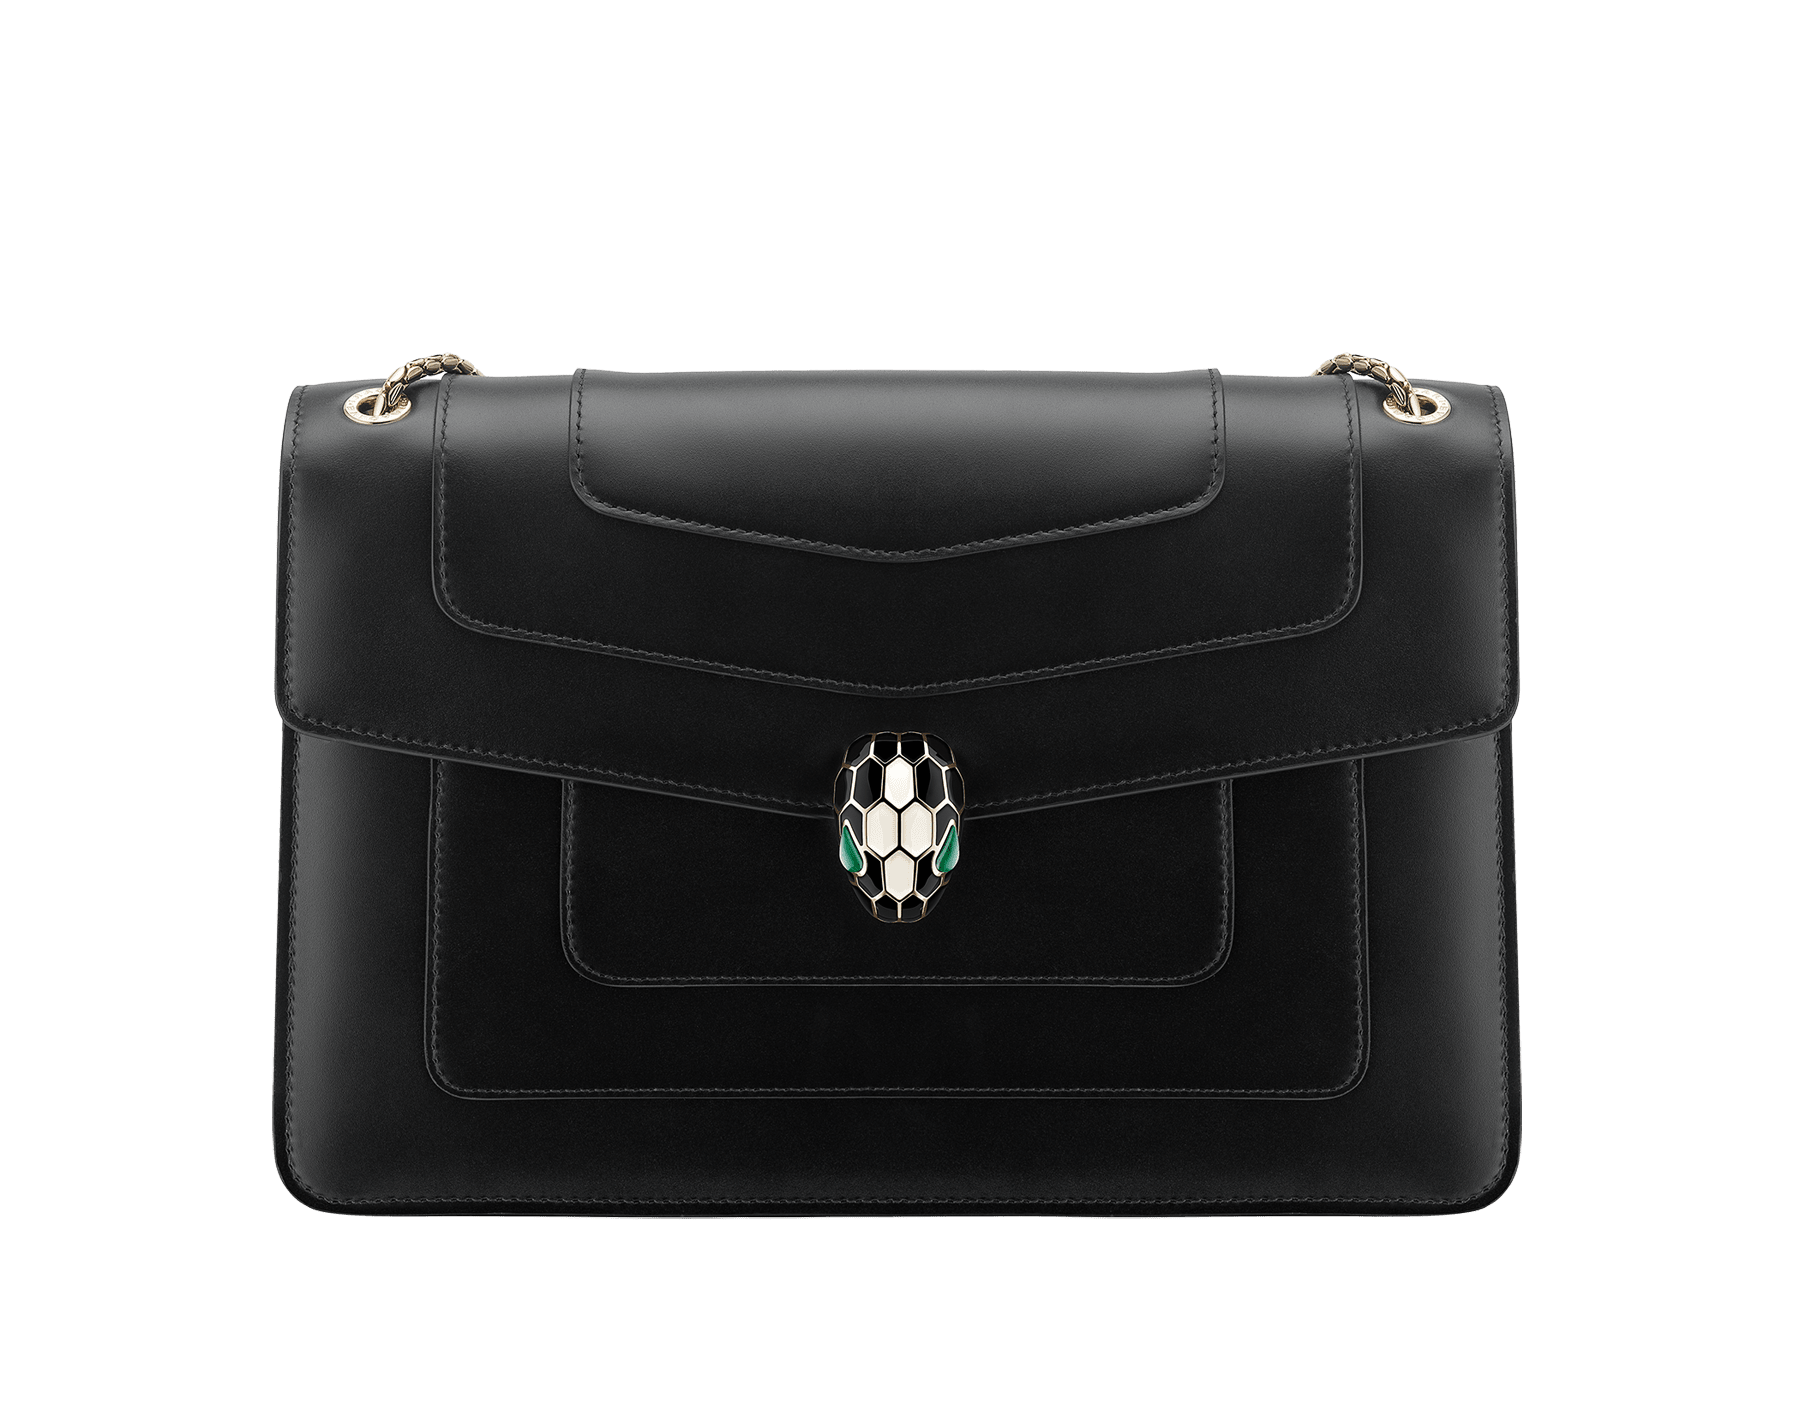 """""""Serpenti Forever"""" shoulder bag in black calf leather with emerald green gros grain internal lining. Iconic snakehead closure in light gold plated brass enriched with black and white agate enamel and green malachite eyes. 1089-Cla image 1"""